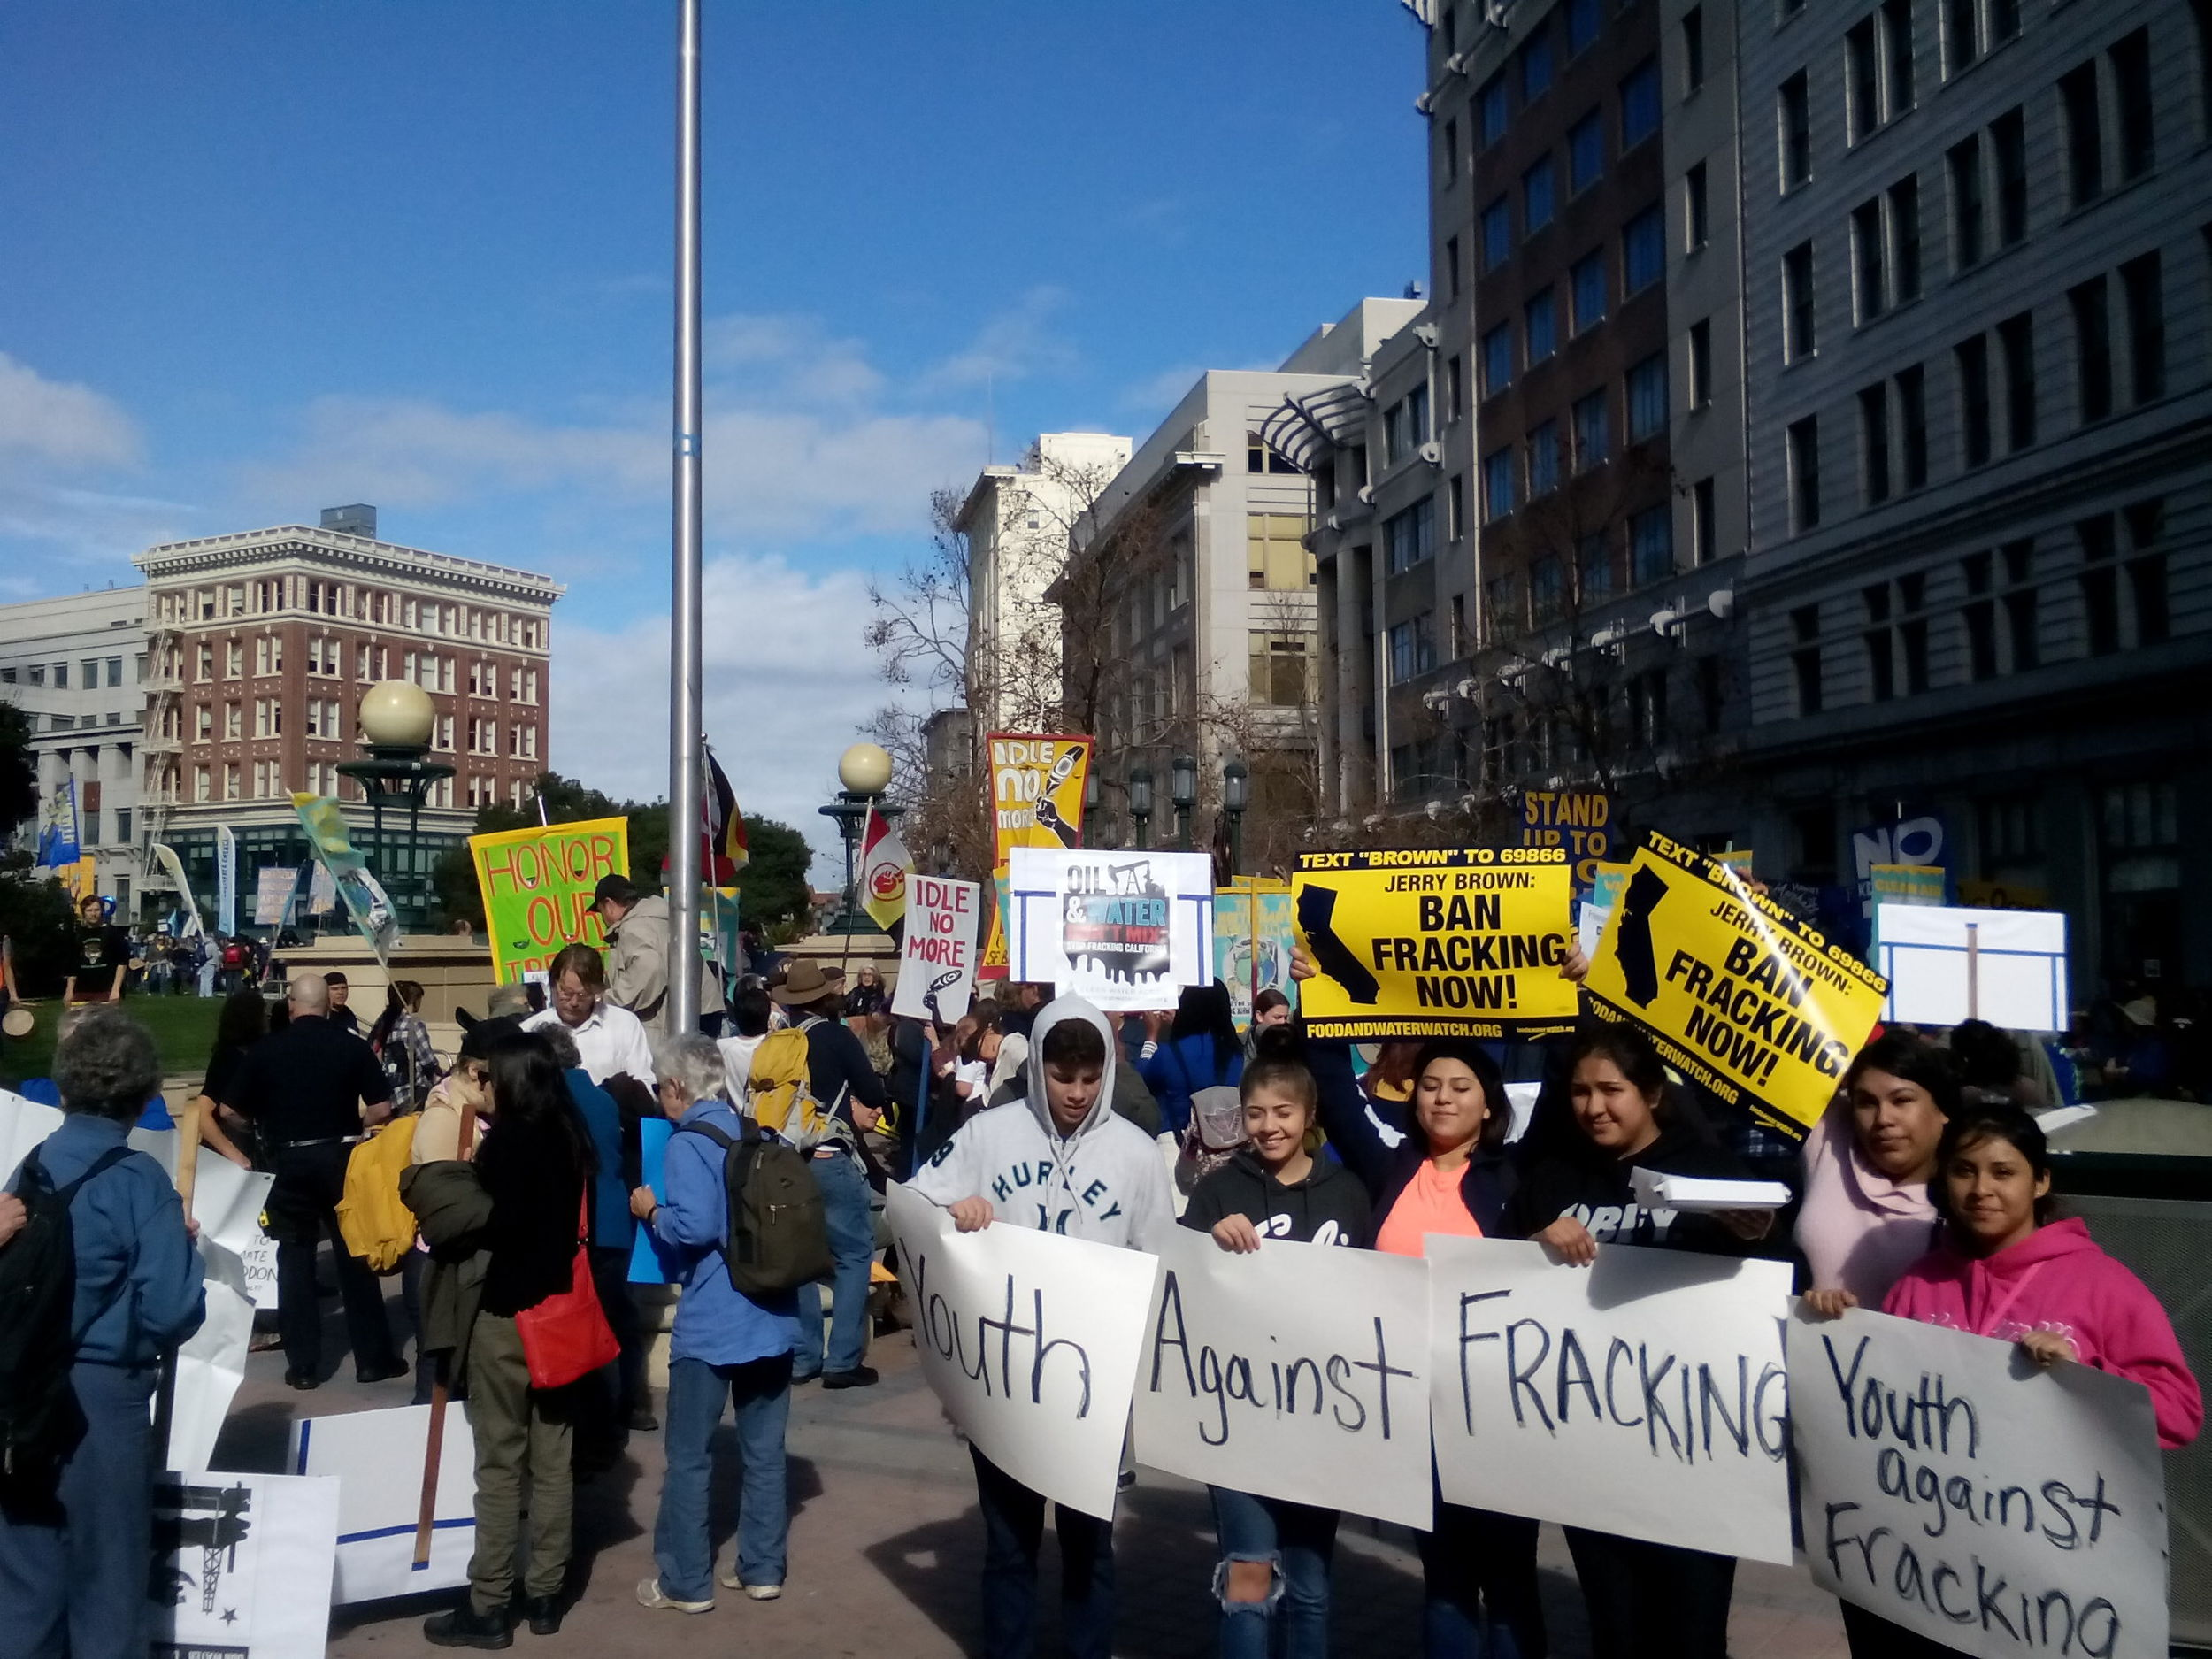 Feb 7, 2015 - Madera Youth Leaders attend the March for Real Climate Leadership in Oakland, to protest fracking, an important Land Use issue. High school students traveled to the East Bay for the first time in their lives and marched through the streets of downtown Oakland with thousands of people to bring attention to the threat of fracking. Protesters called for a statewide ban on the practice, which involves mining for natural gas by blasting a mix of chemicals deep into the Earth's crust.